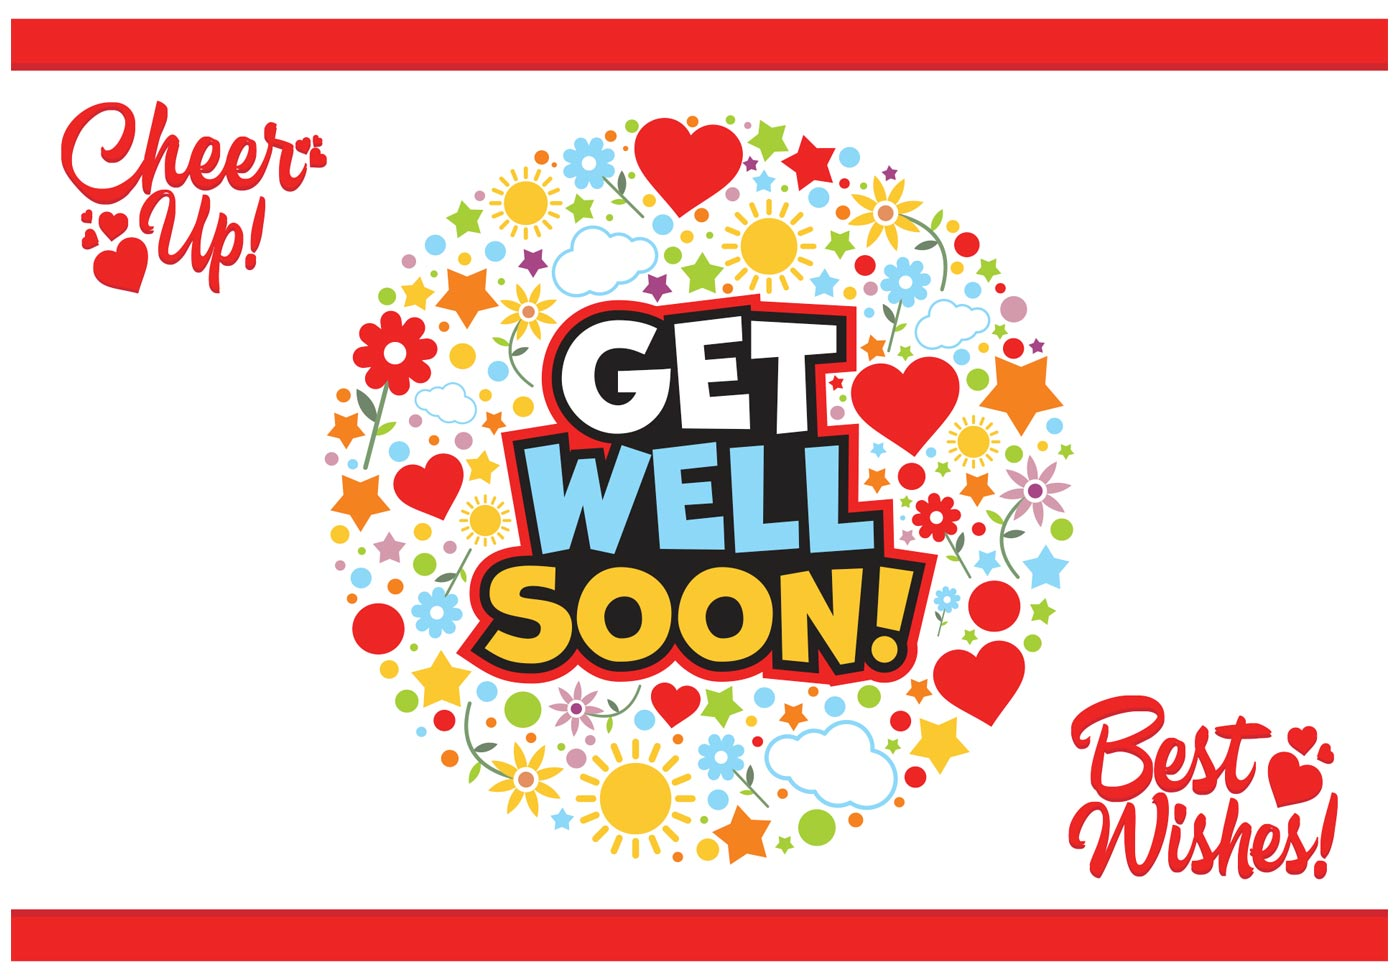 Get Well Soon Cards Vector Free - Download Free Vector Art ...